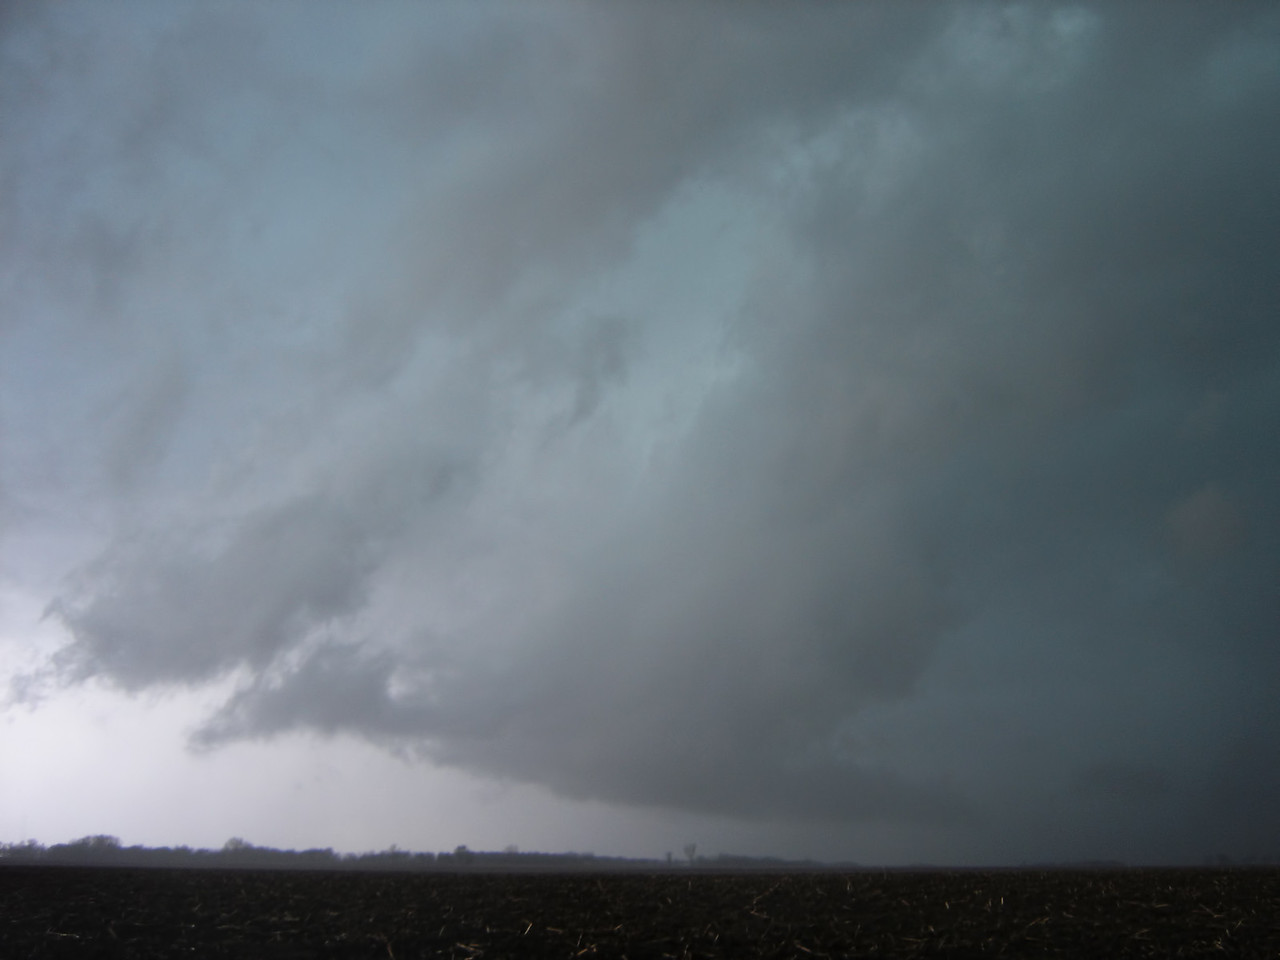 "April 16 - Tornado warned storm in NW Macon County IL<br /> <br /> Related link <a href=""http://www.crh.noaa.gov/ilx/?n=apr16tor"">http://www.crh.noaa.gov/ilx/?n=apr16tor</a>"